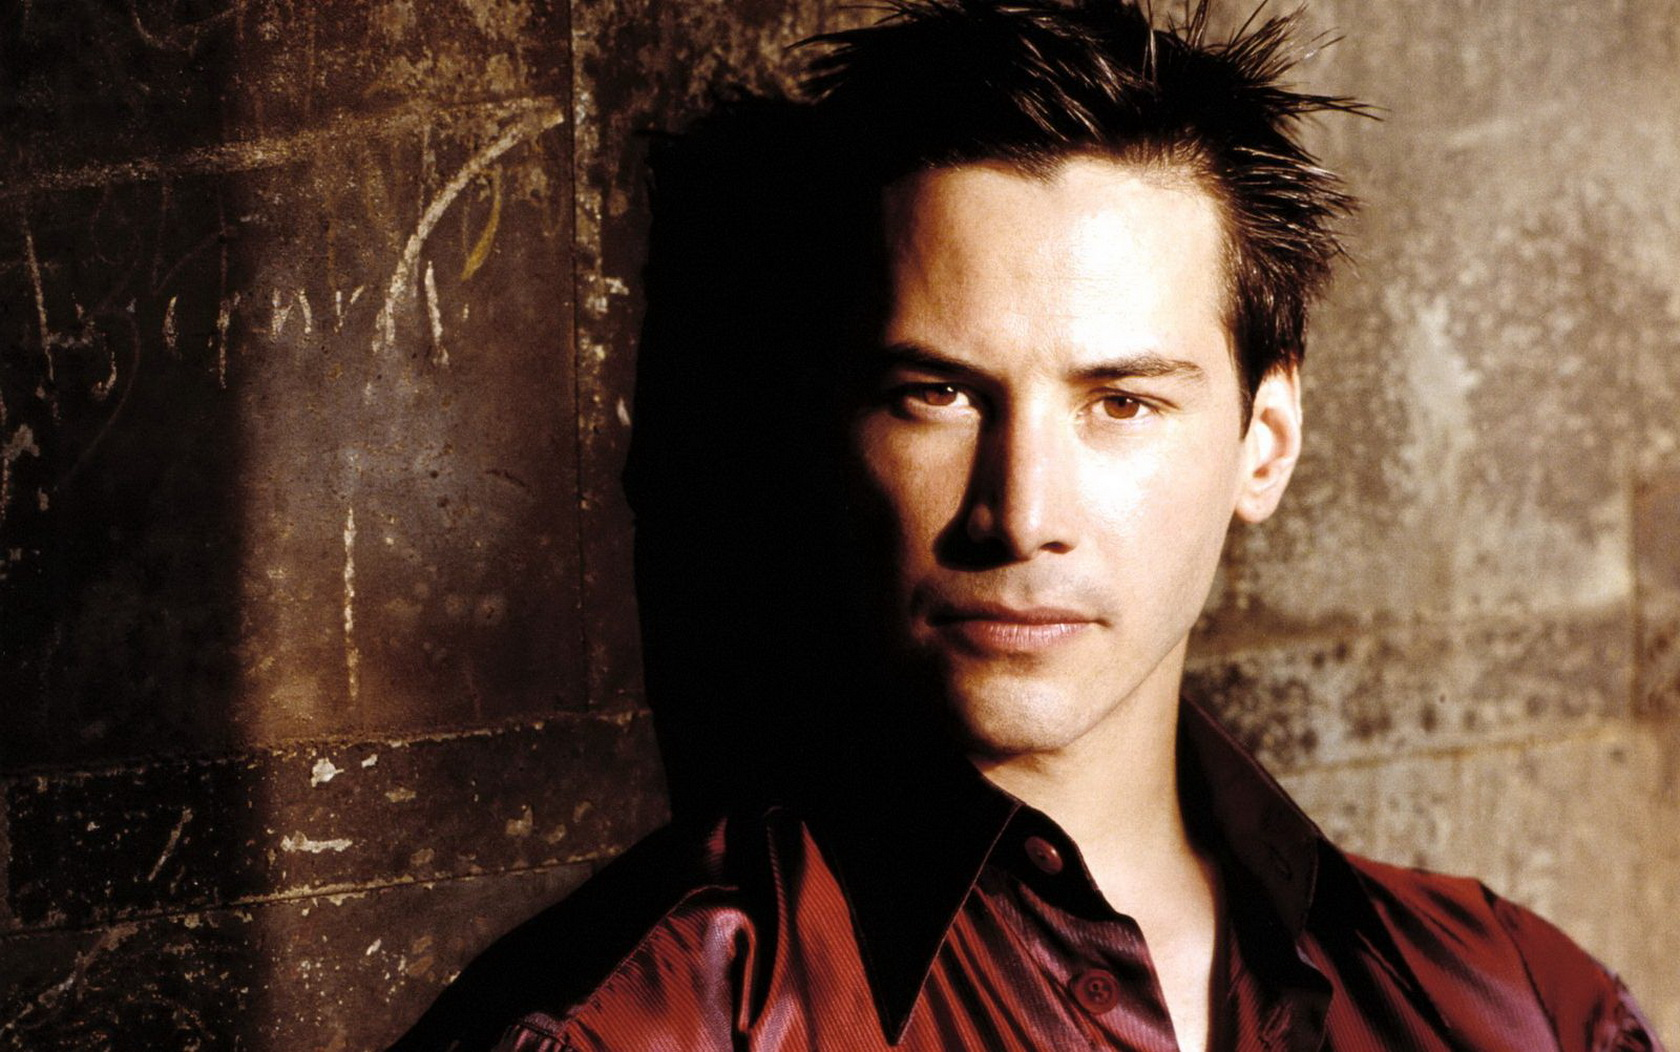 Buddha Iphone 6 Wallpaper Keanu Charles Reeves Wallpapers High Quality Download Free